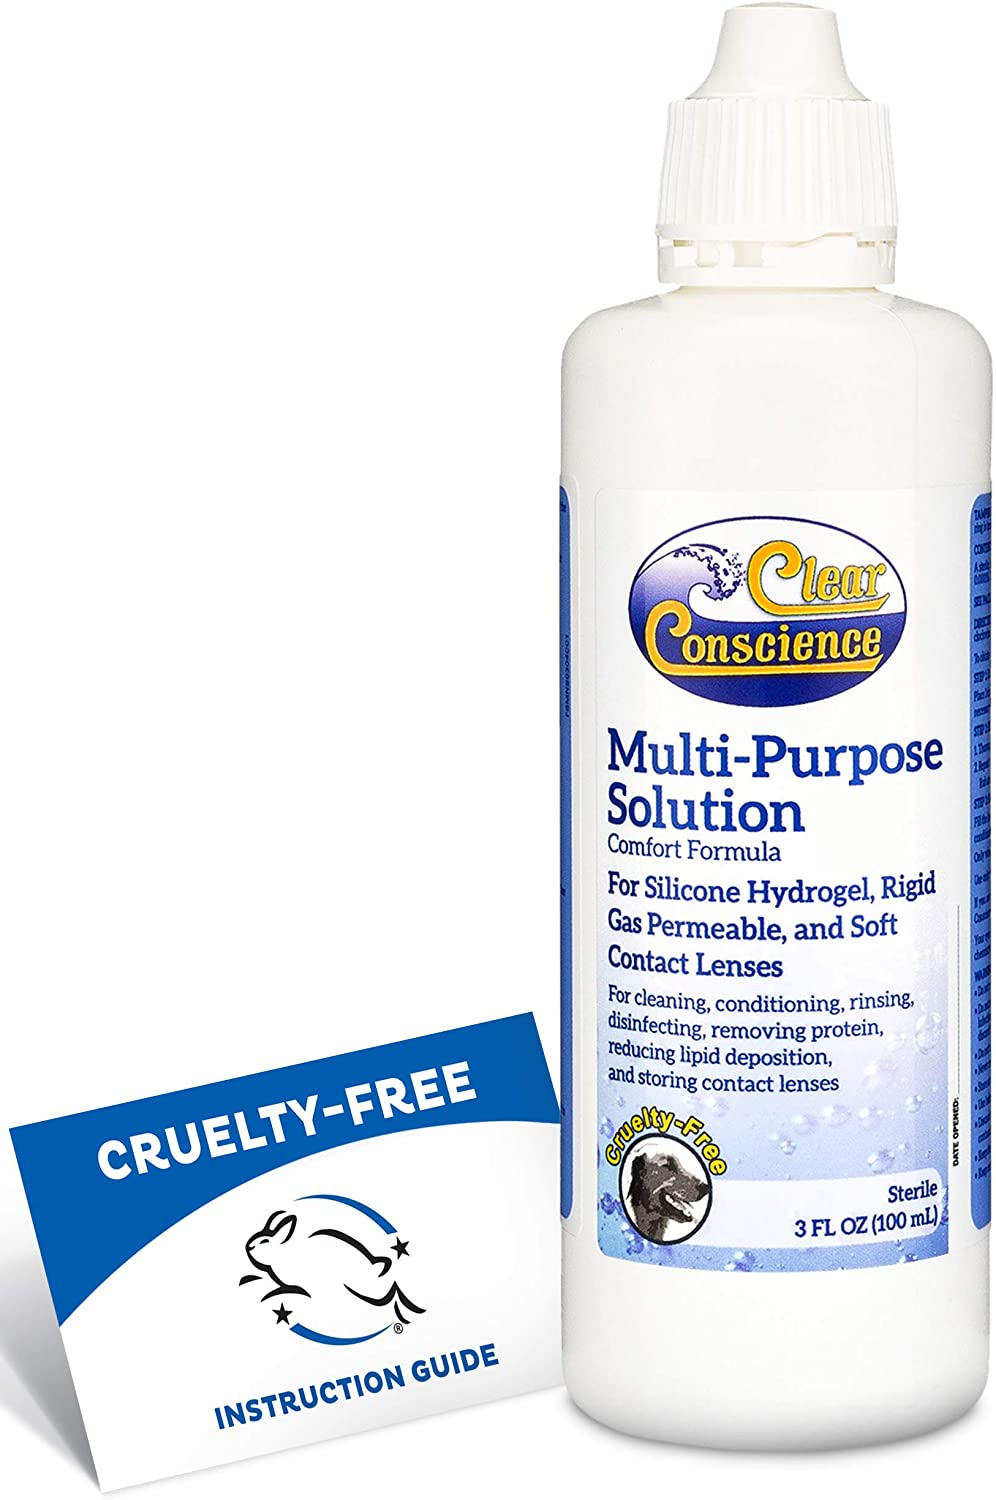 Clear Conscience Multi Purpose Contact Solution - Contact Lens Solution as a Complete Eye Solution for Contacts -Includes Cruelty Free Instruction Guide (3 oz Single Pack)